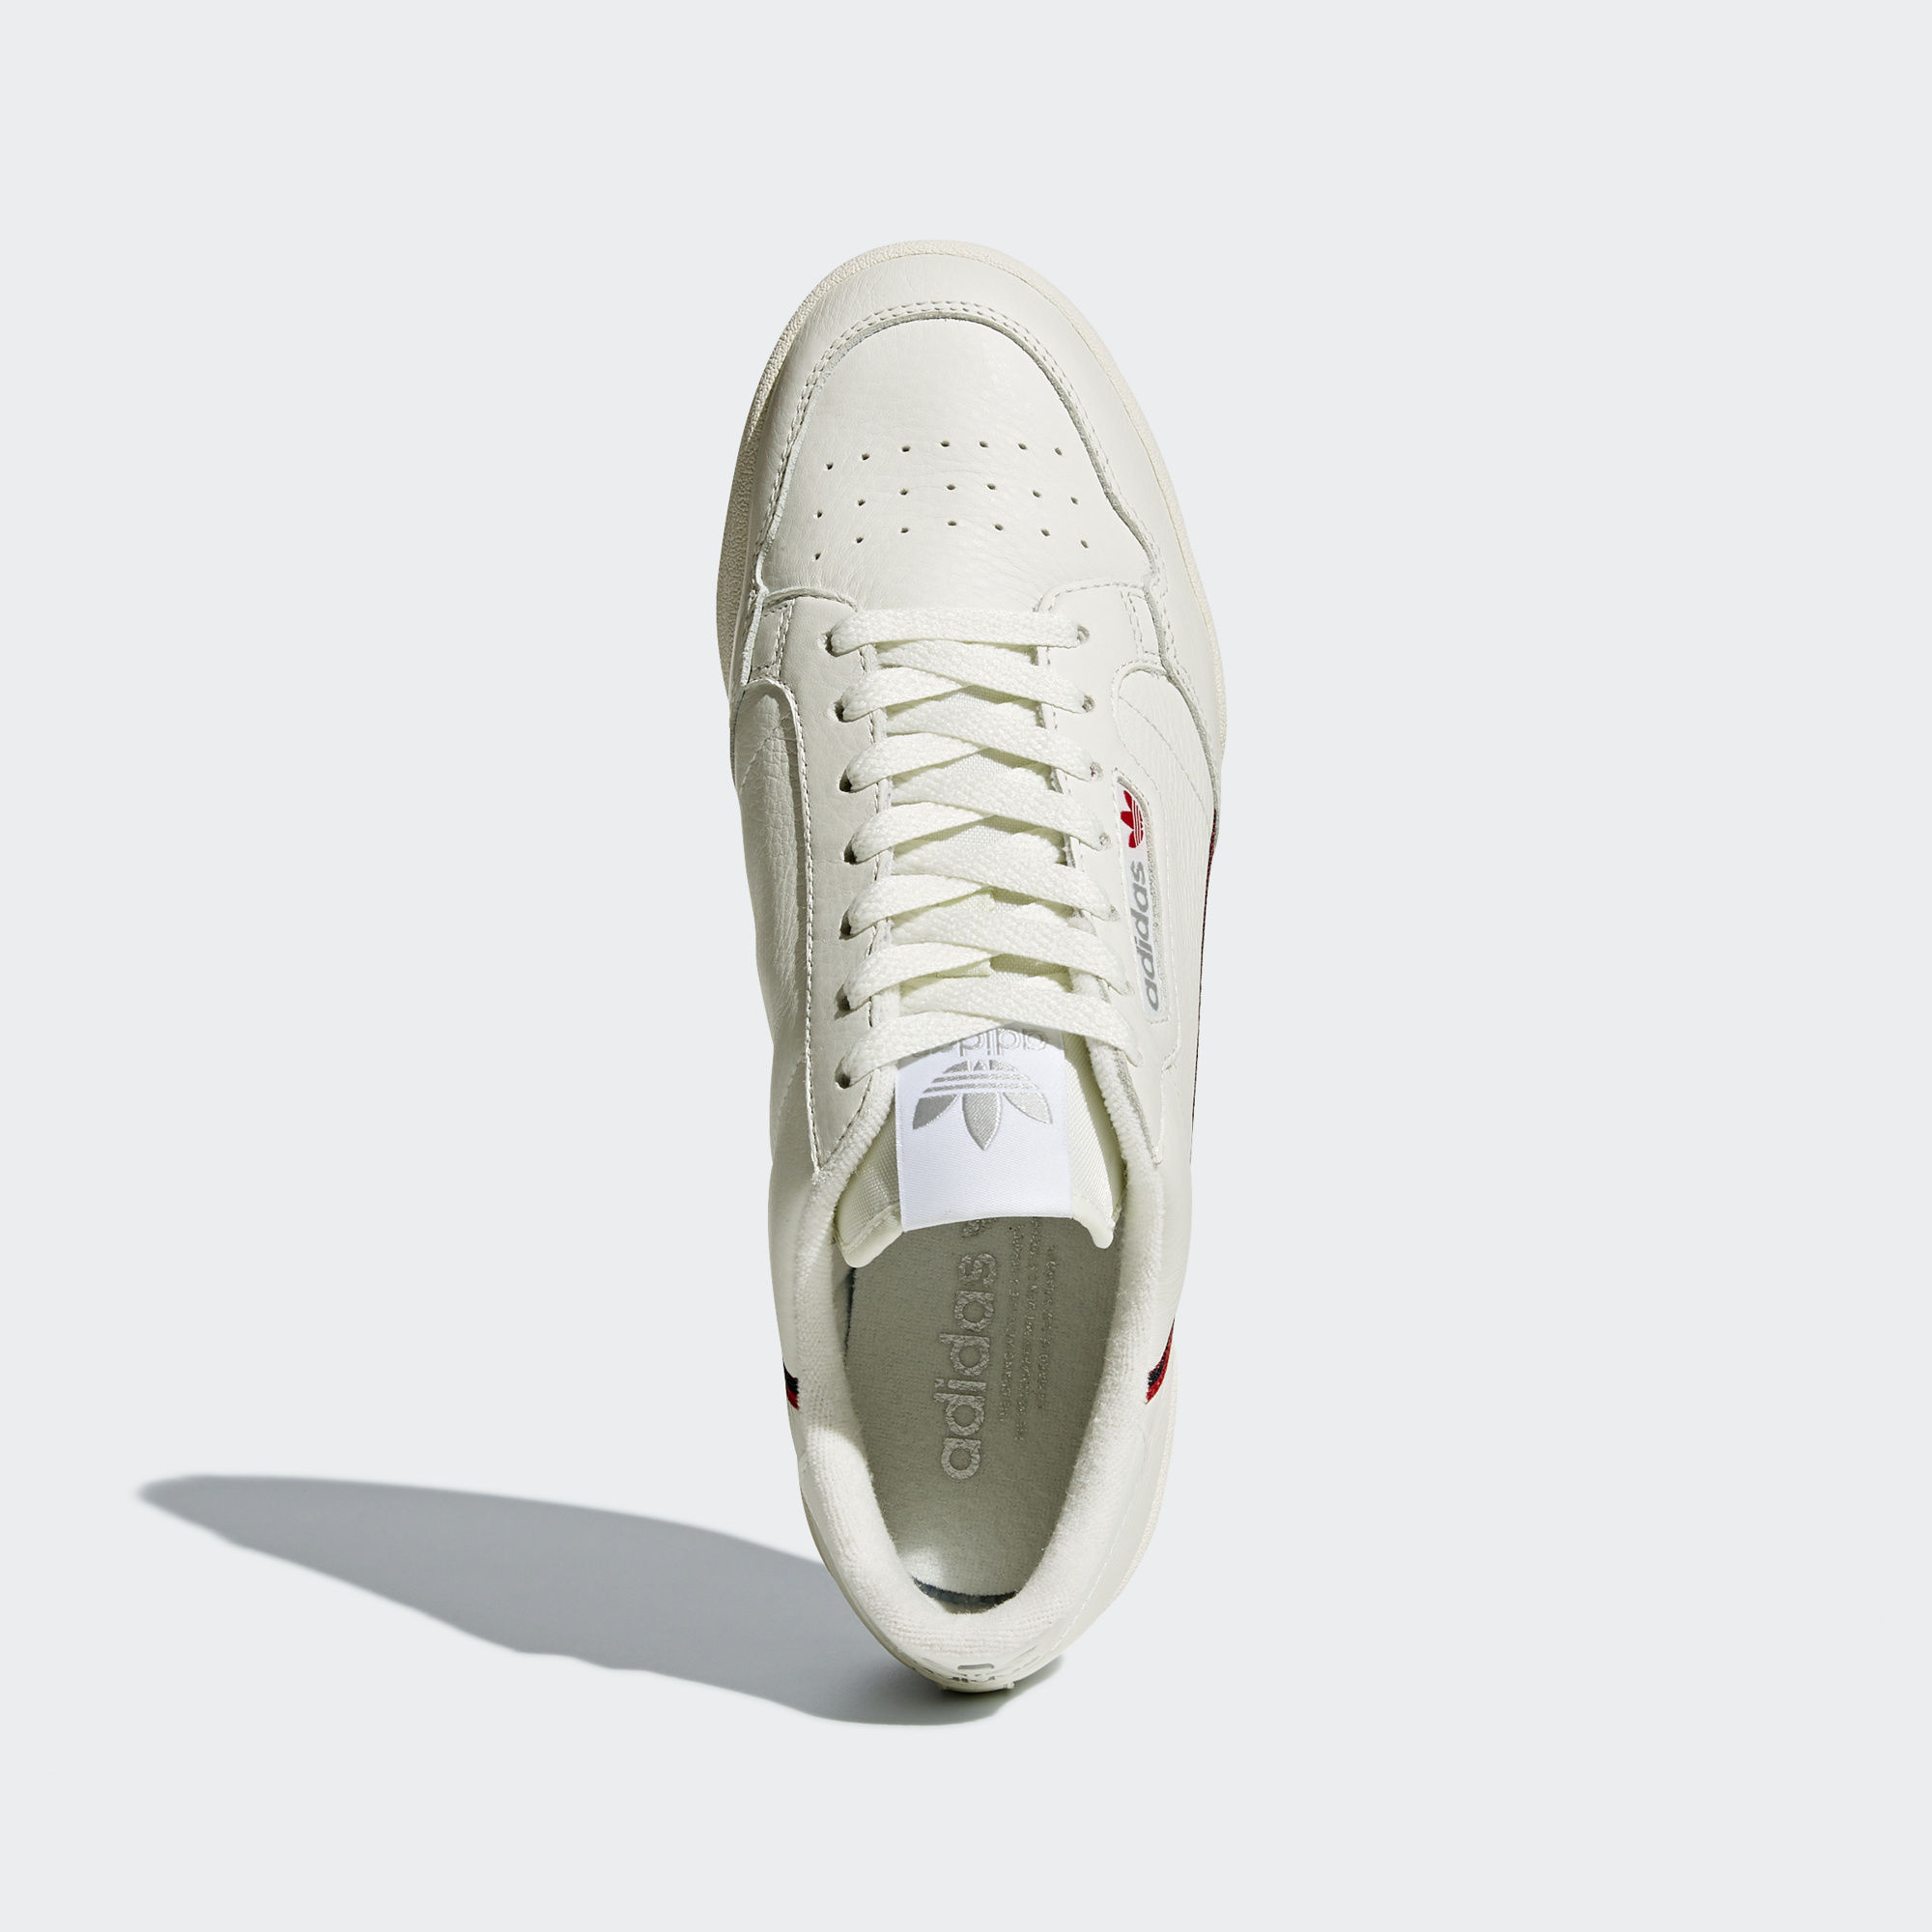 Adidas Continental 80 Rascal Beige / Off White / Scarlet (B41680)